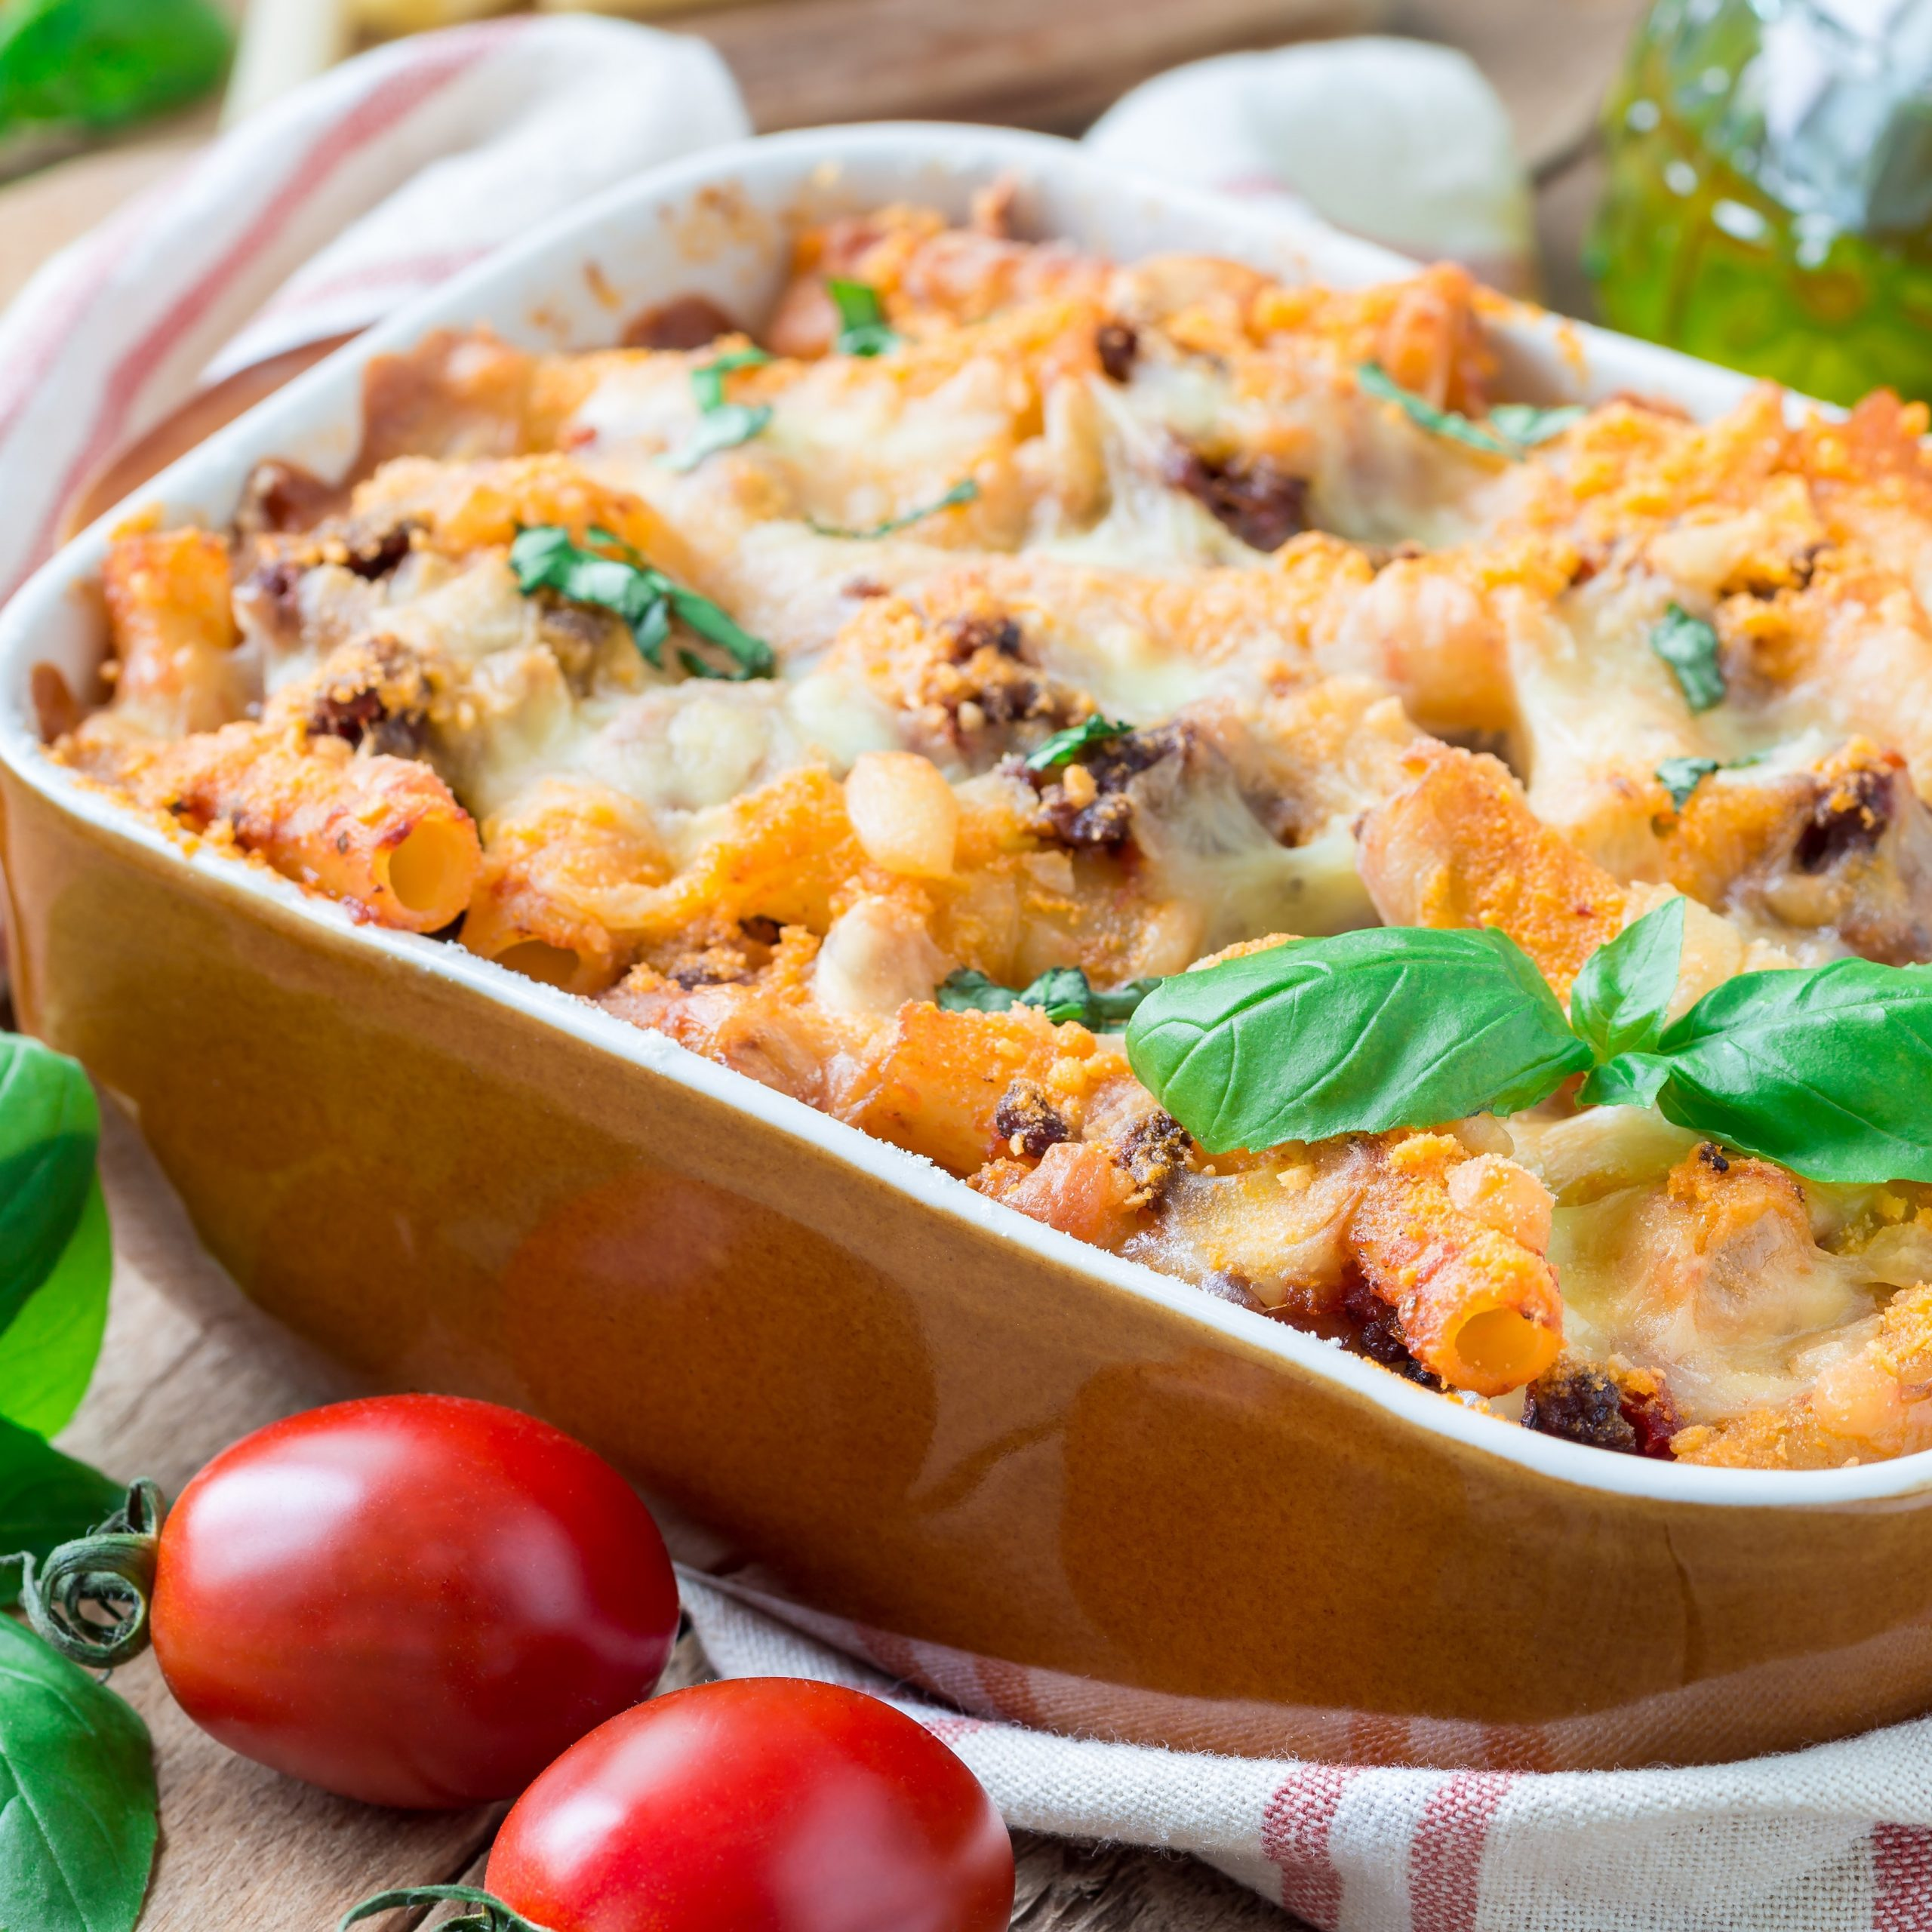 Bolognese Bake with our delicious Grated Mature White Cheddar and Mozzarella